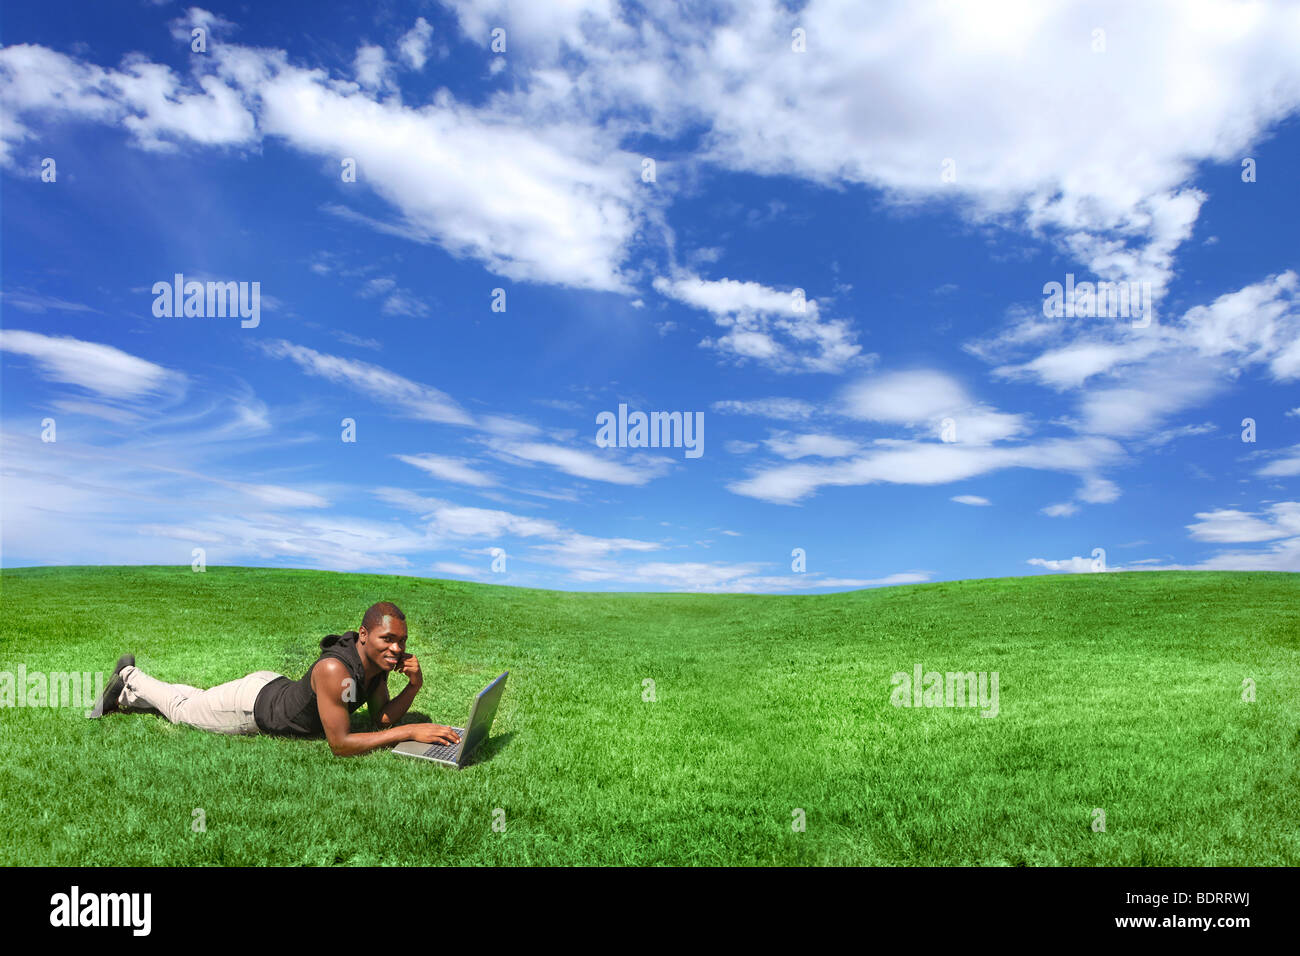 Student Working Outdoors on a Laptop Computers - Stock Image